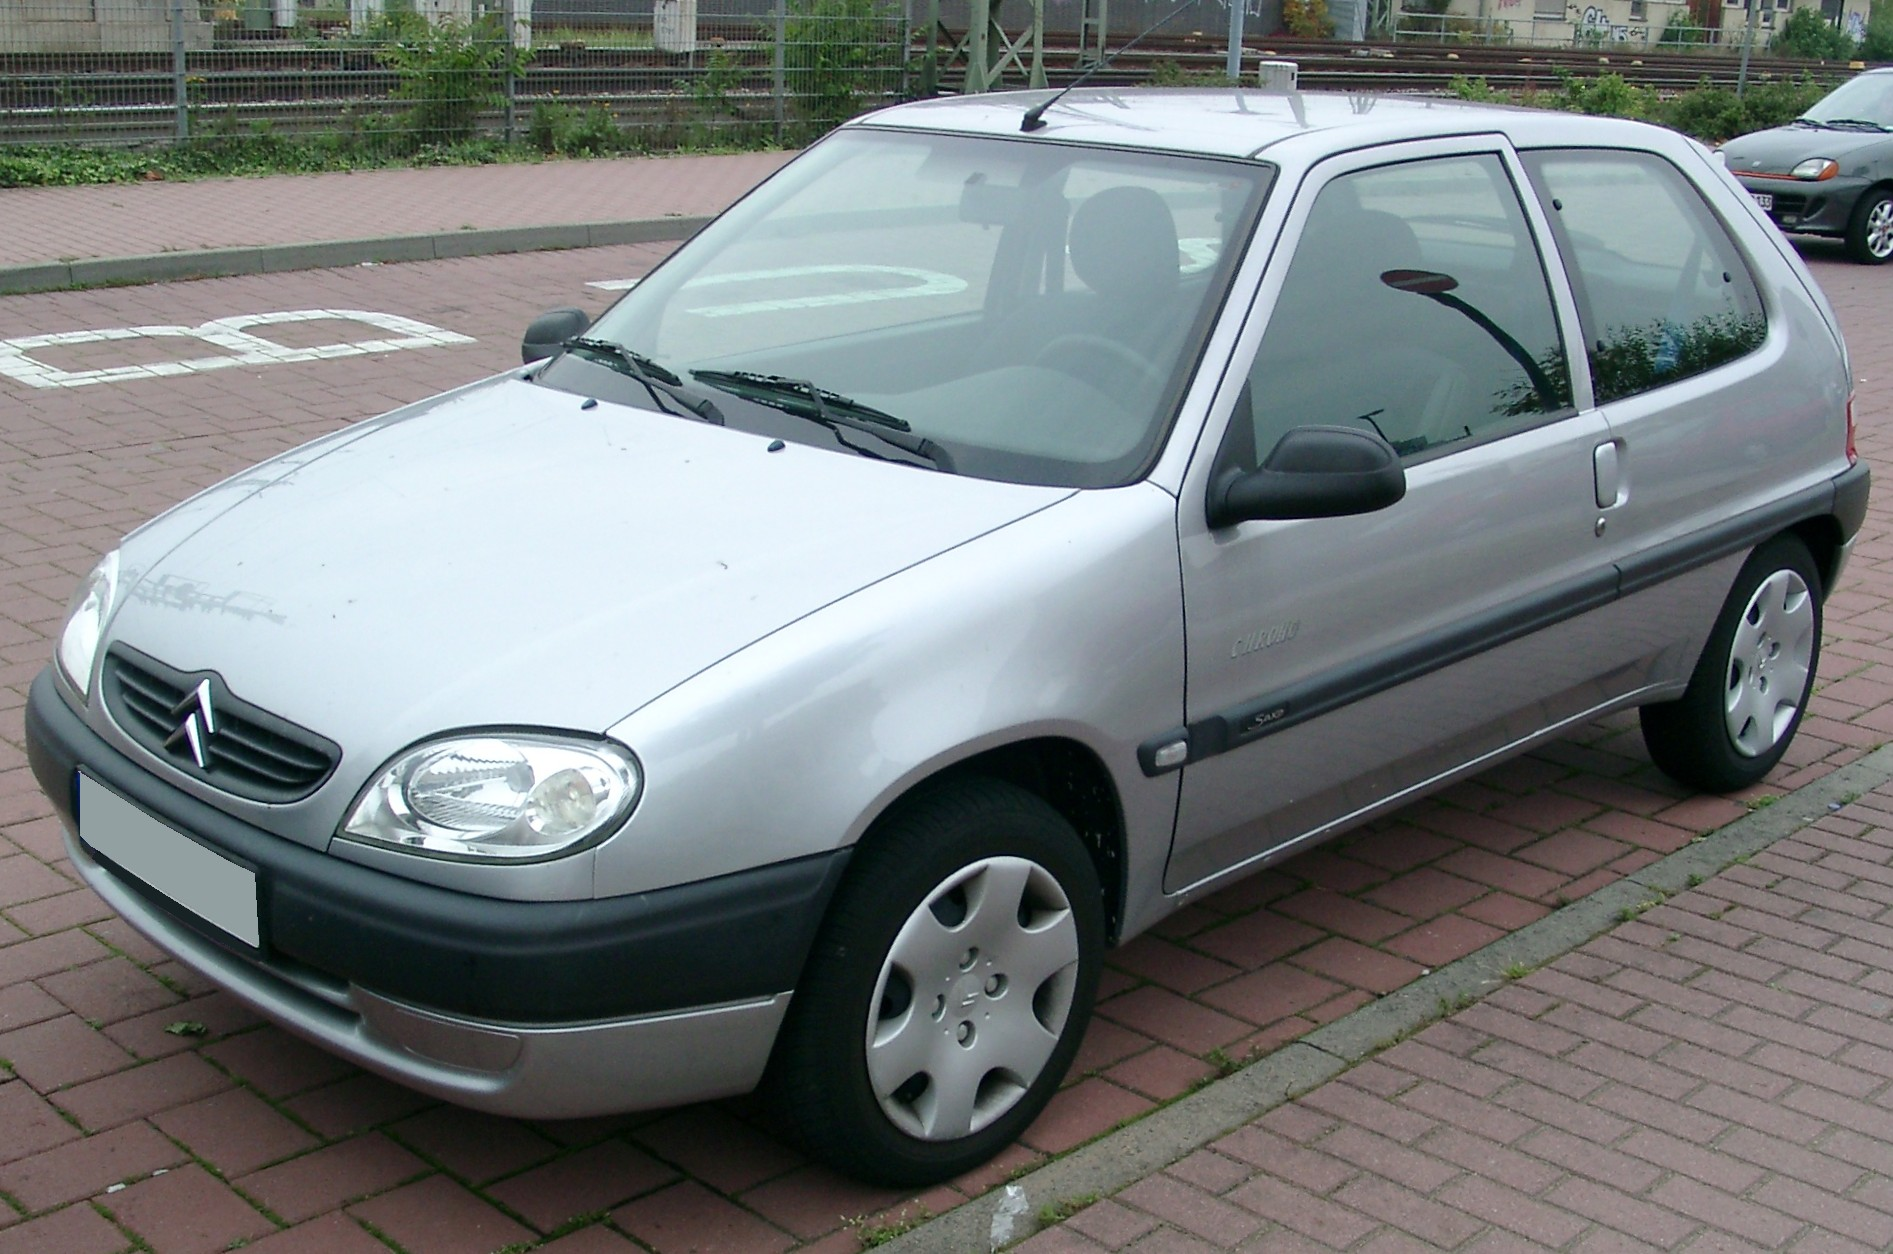 Citroen Saxo 1996 - 2003 Hatchback 3 door #2